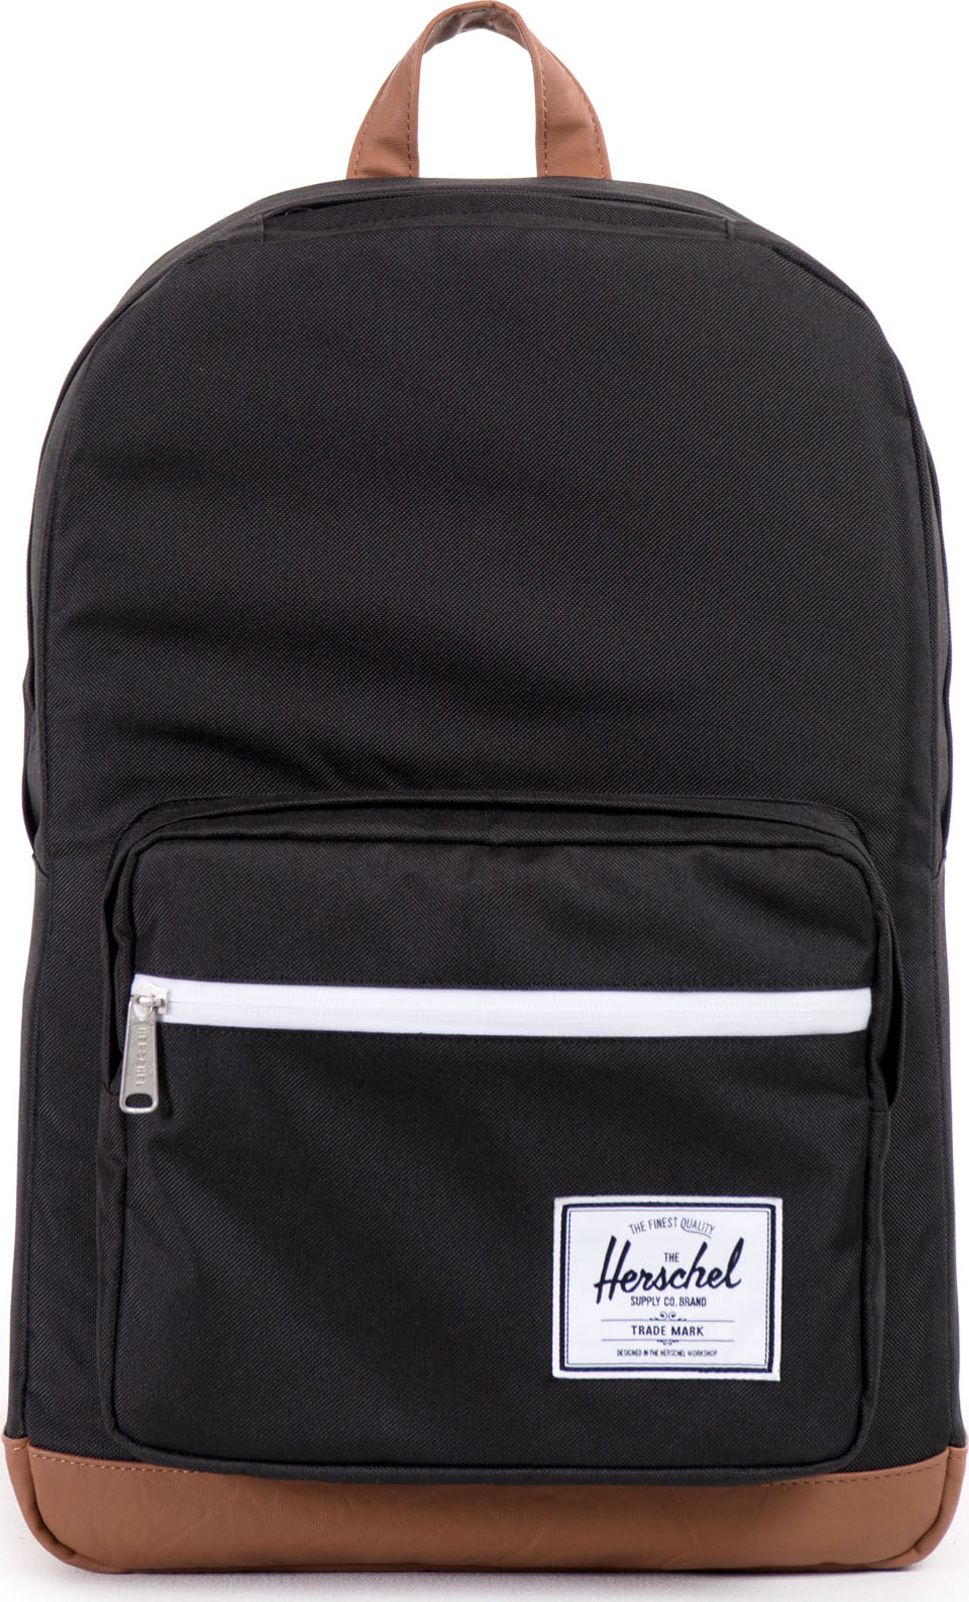 HERSCHEL Pop Quiz Black/Tan One Size